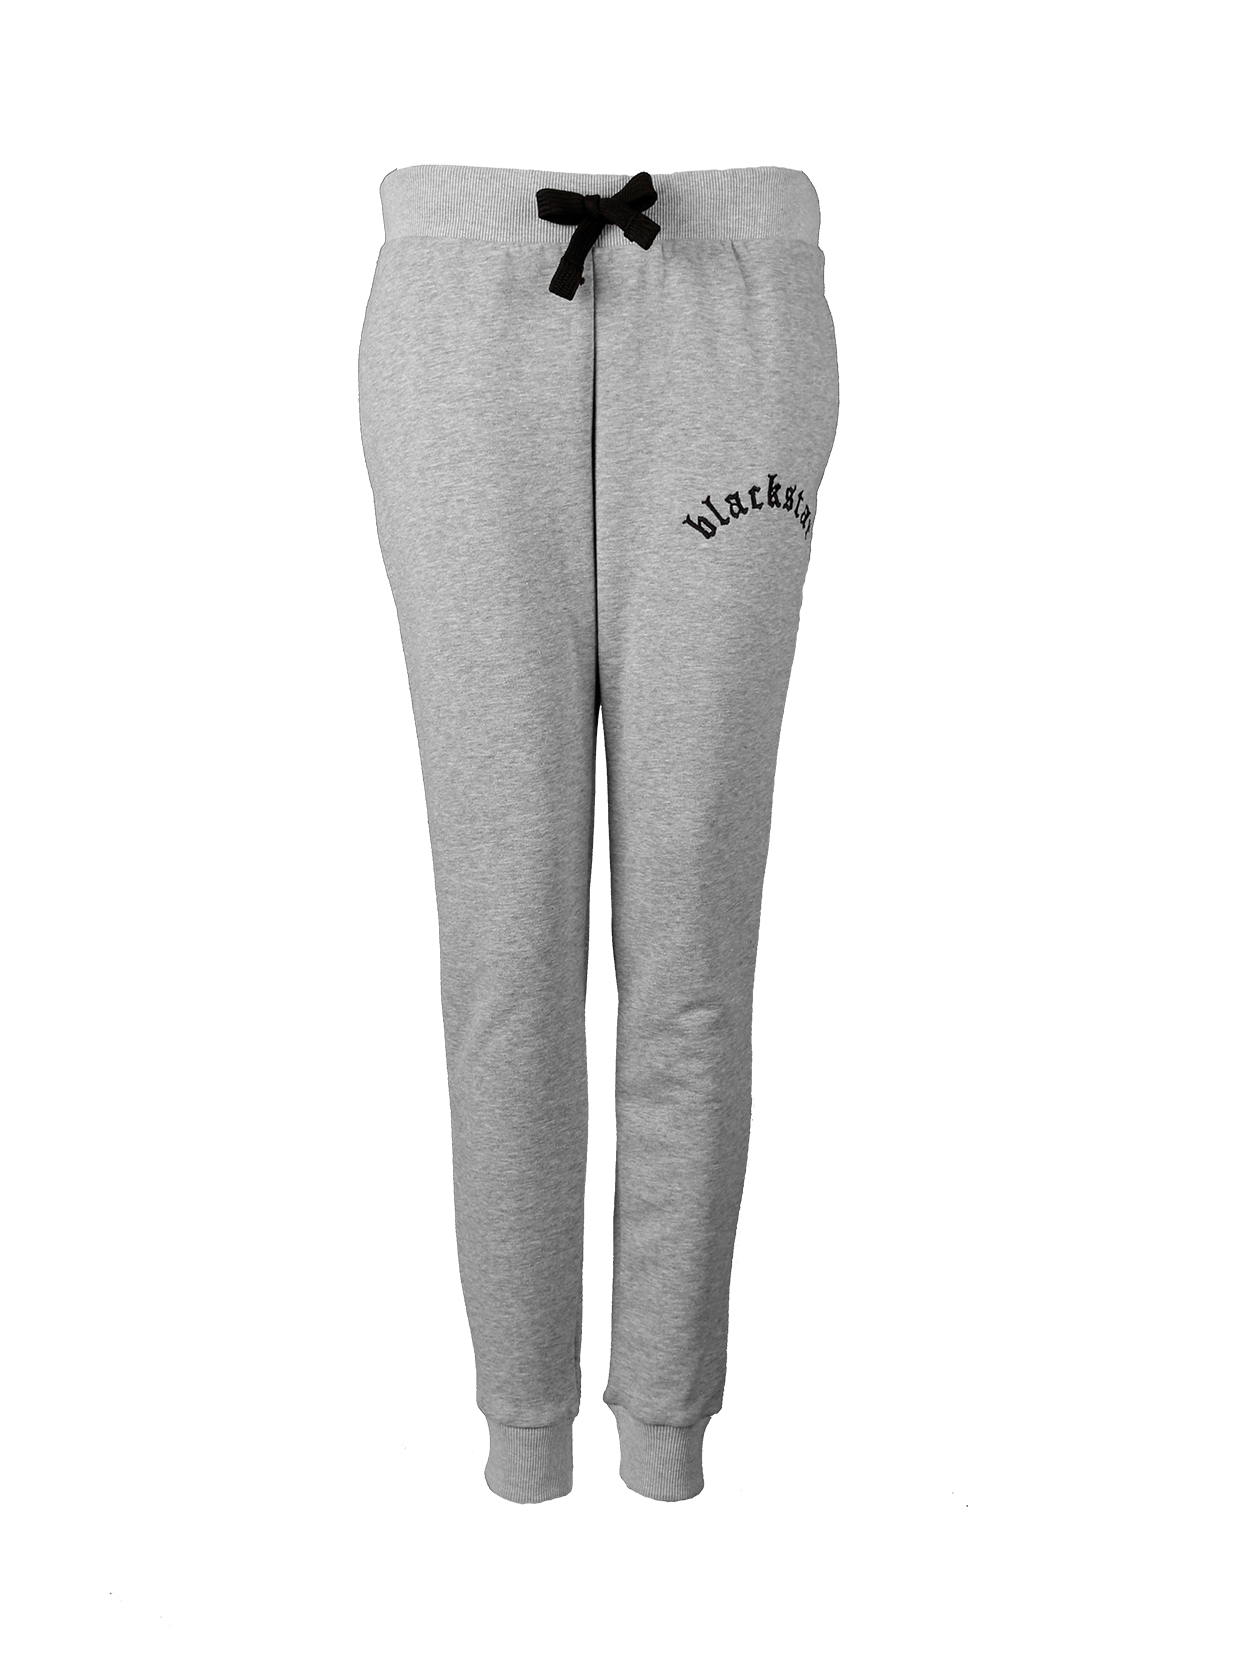 Womens sweatpants EssentialWomens sweatpants by Black Star Wear. Regular waist with an elastic band and lacing. Side pockets, blackstar embroidery on the left side. Soft touch cotton blend that keeps warmth in cold weather. Avaliable in black and gray.<br><br>size: L<br>color: Grey<br>gender: female